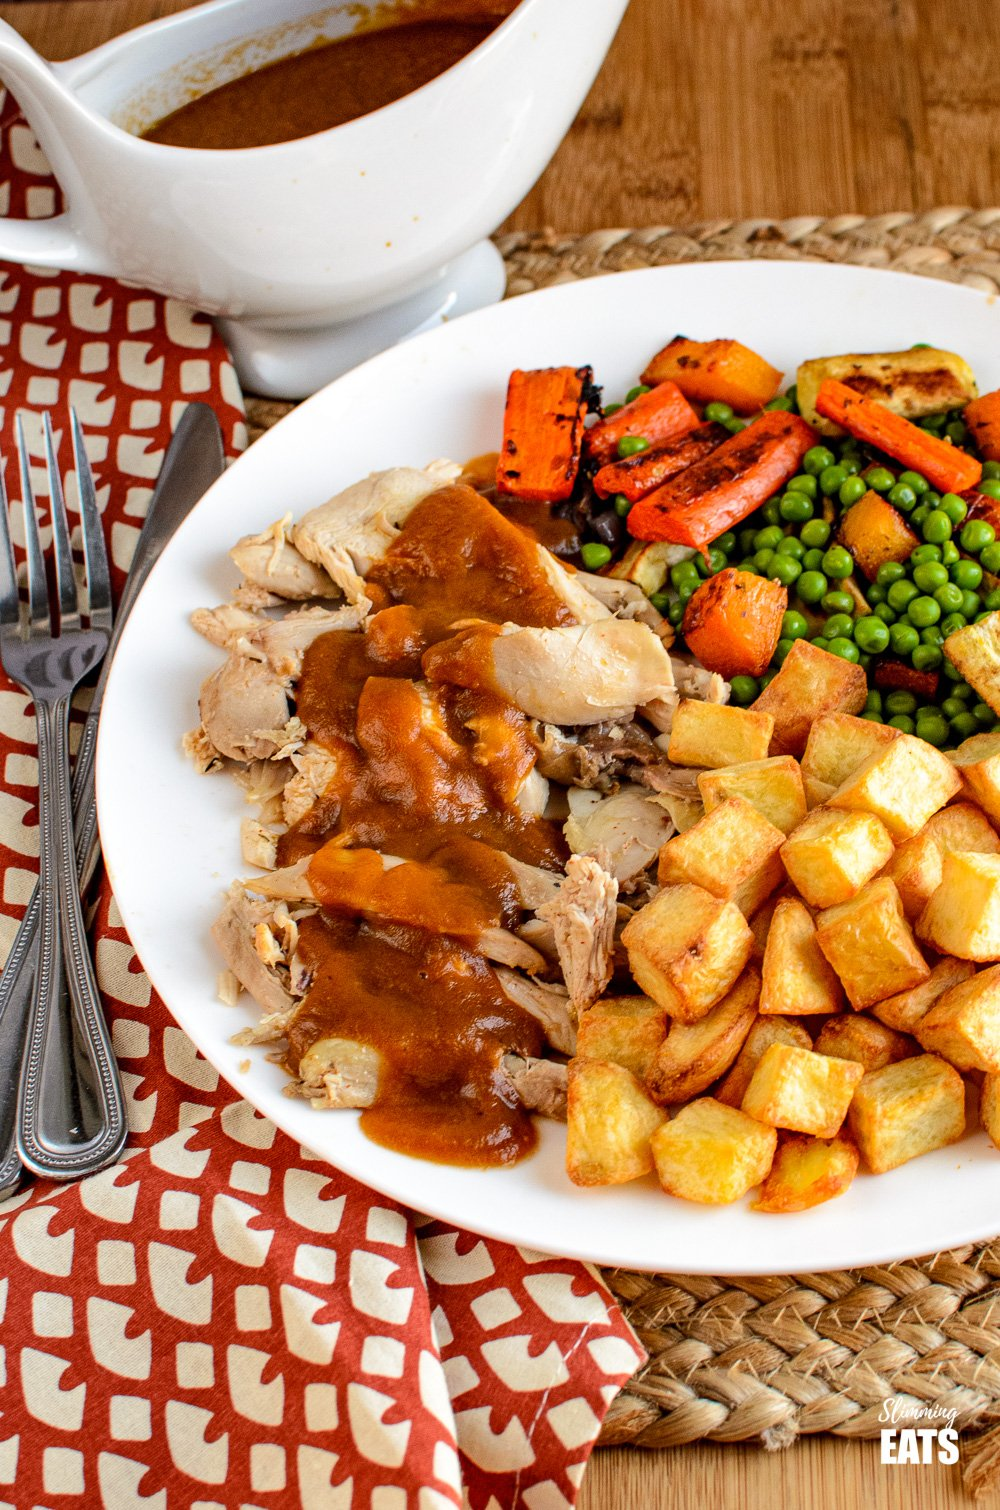 instant pot cooked whole chicken on plate with vegetables, drizzled with gravy